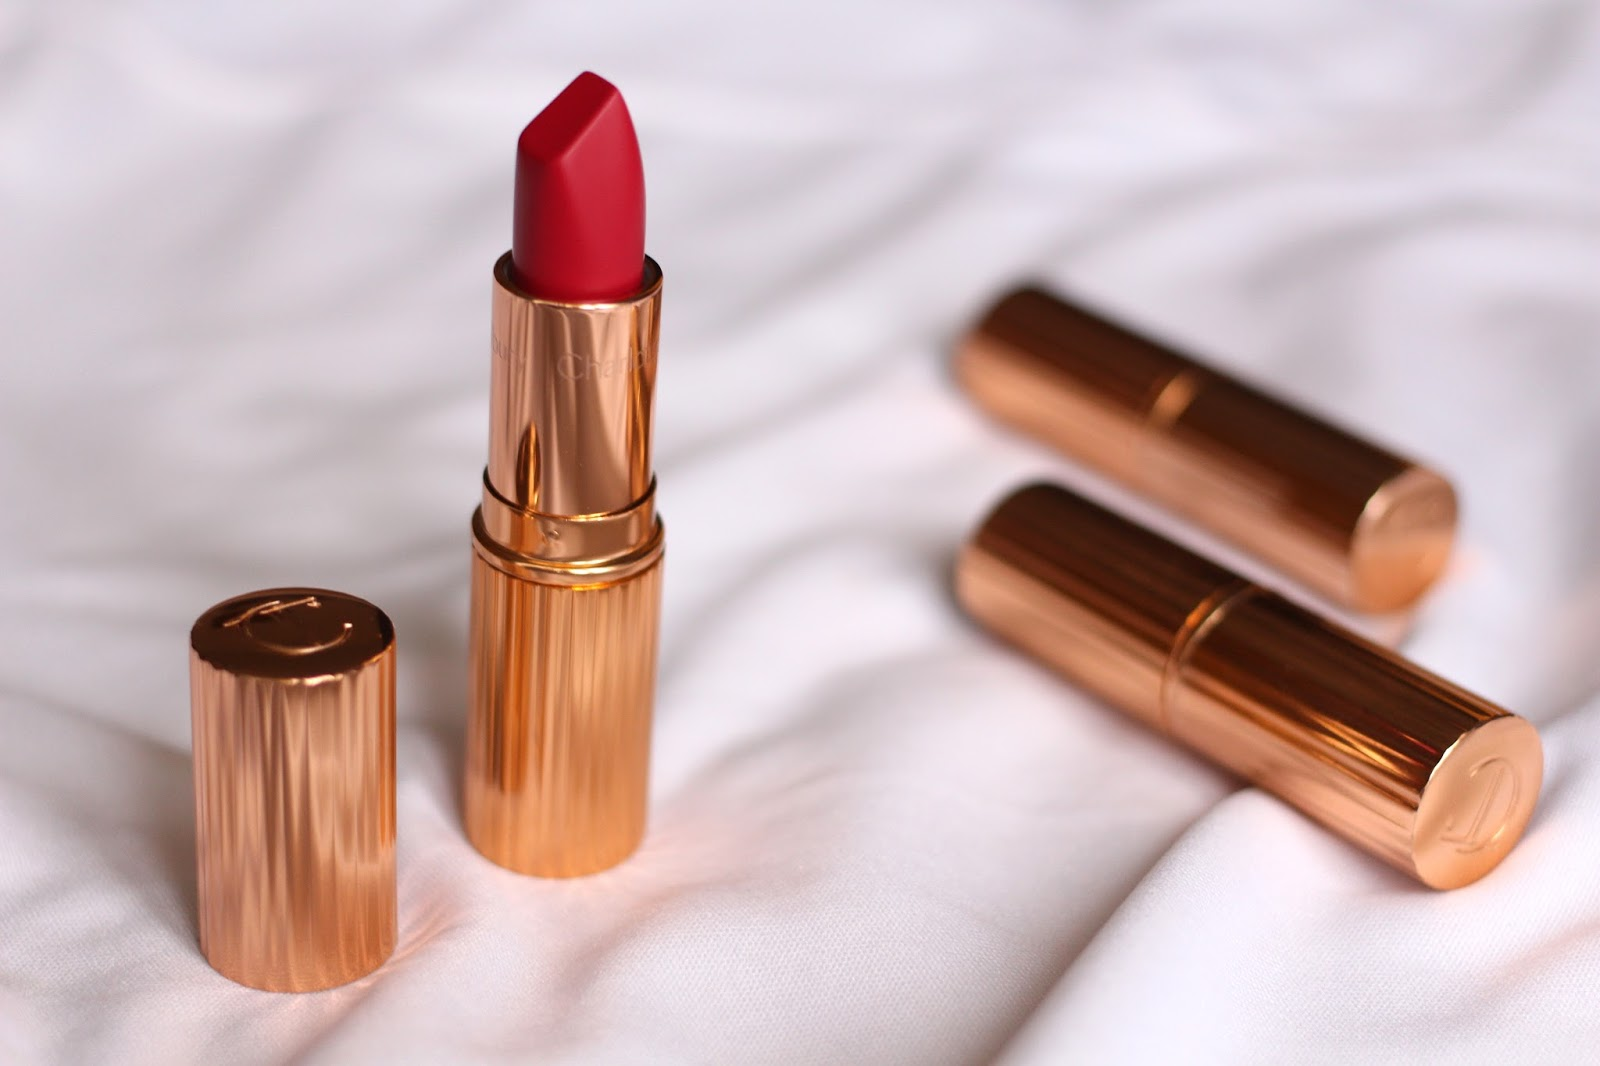 CHARLOTTE TILBURY LIPSTICK 'THE QUEEN'